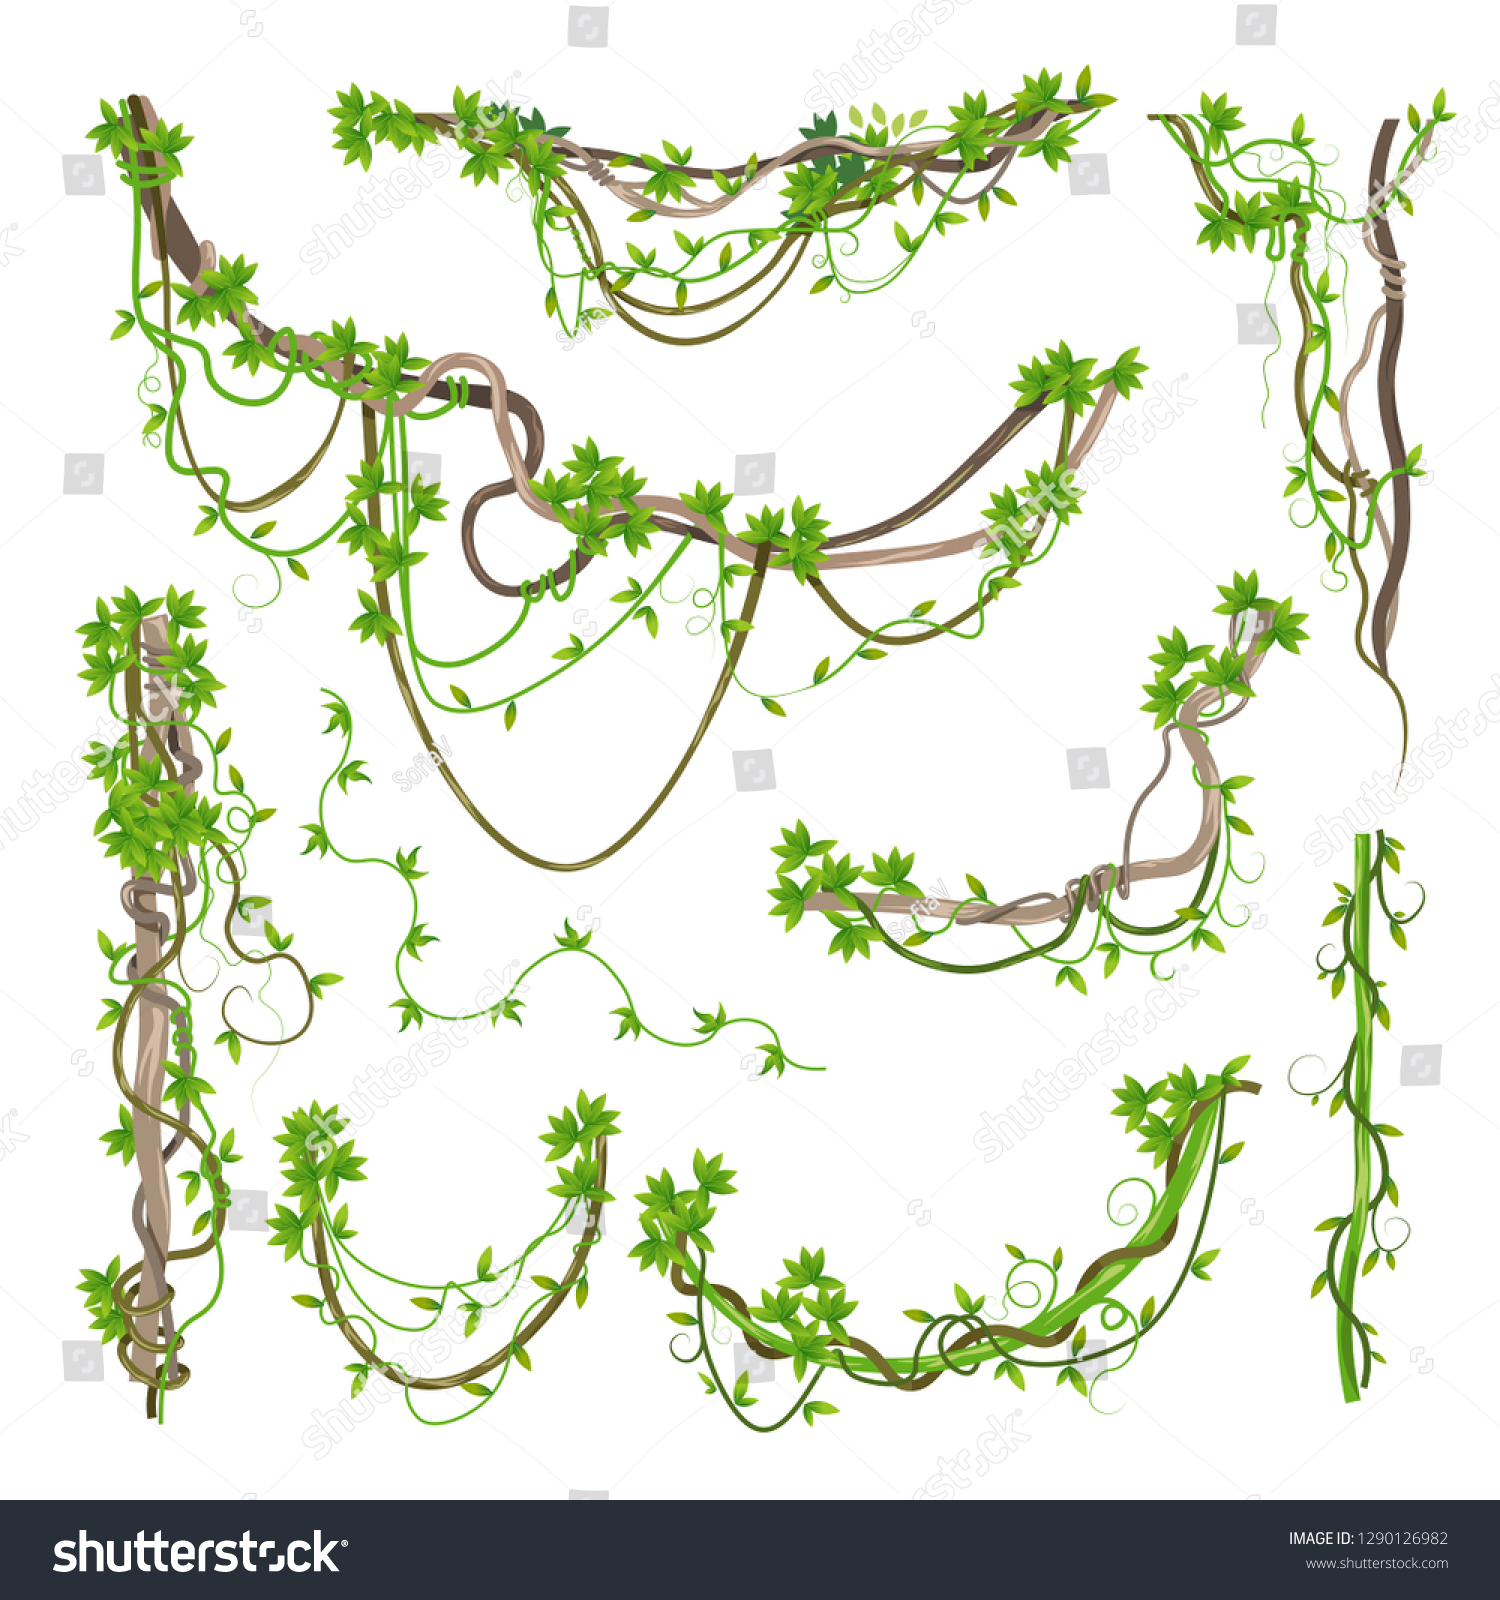 Liana or jungle plant or vine wild greenery winding branches vector stem with leaves isolated decorative elements tropical vines rainforest flora and exotic botany wild curling species and twigs.